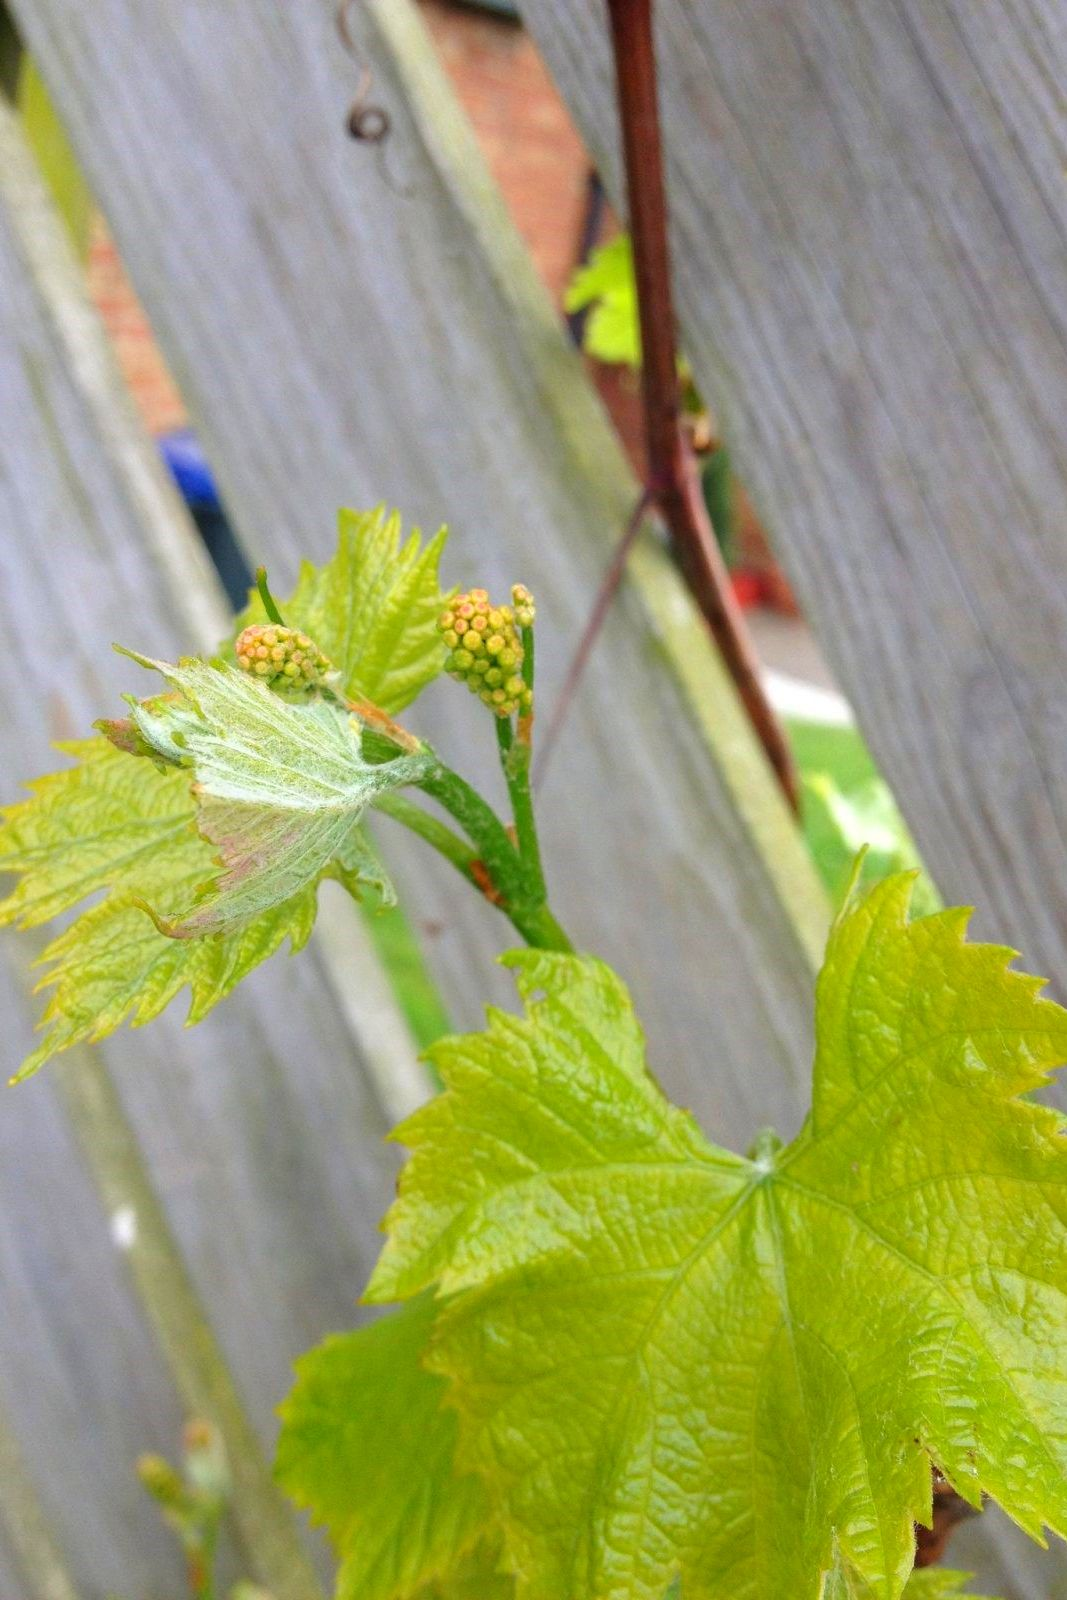 Grow grapes in your backyard and tips for growing grapes